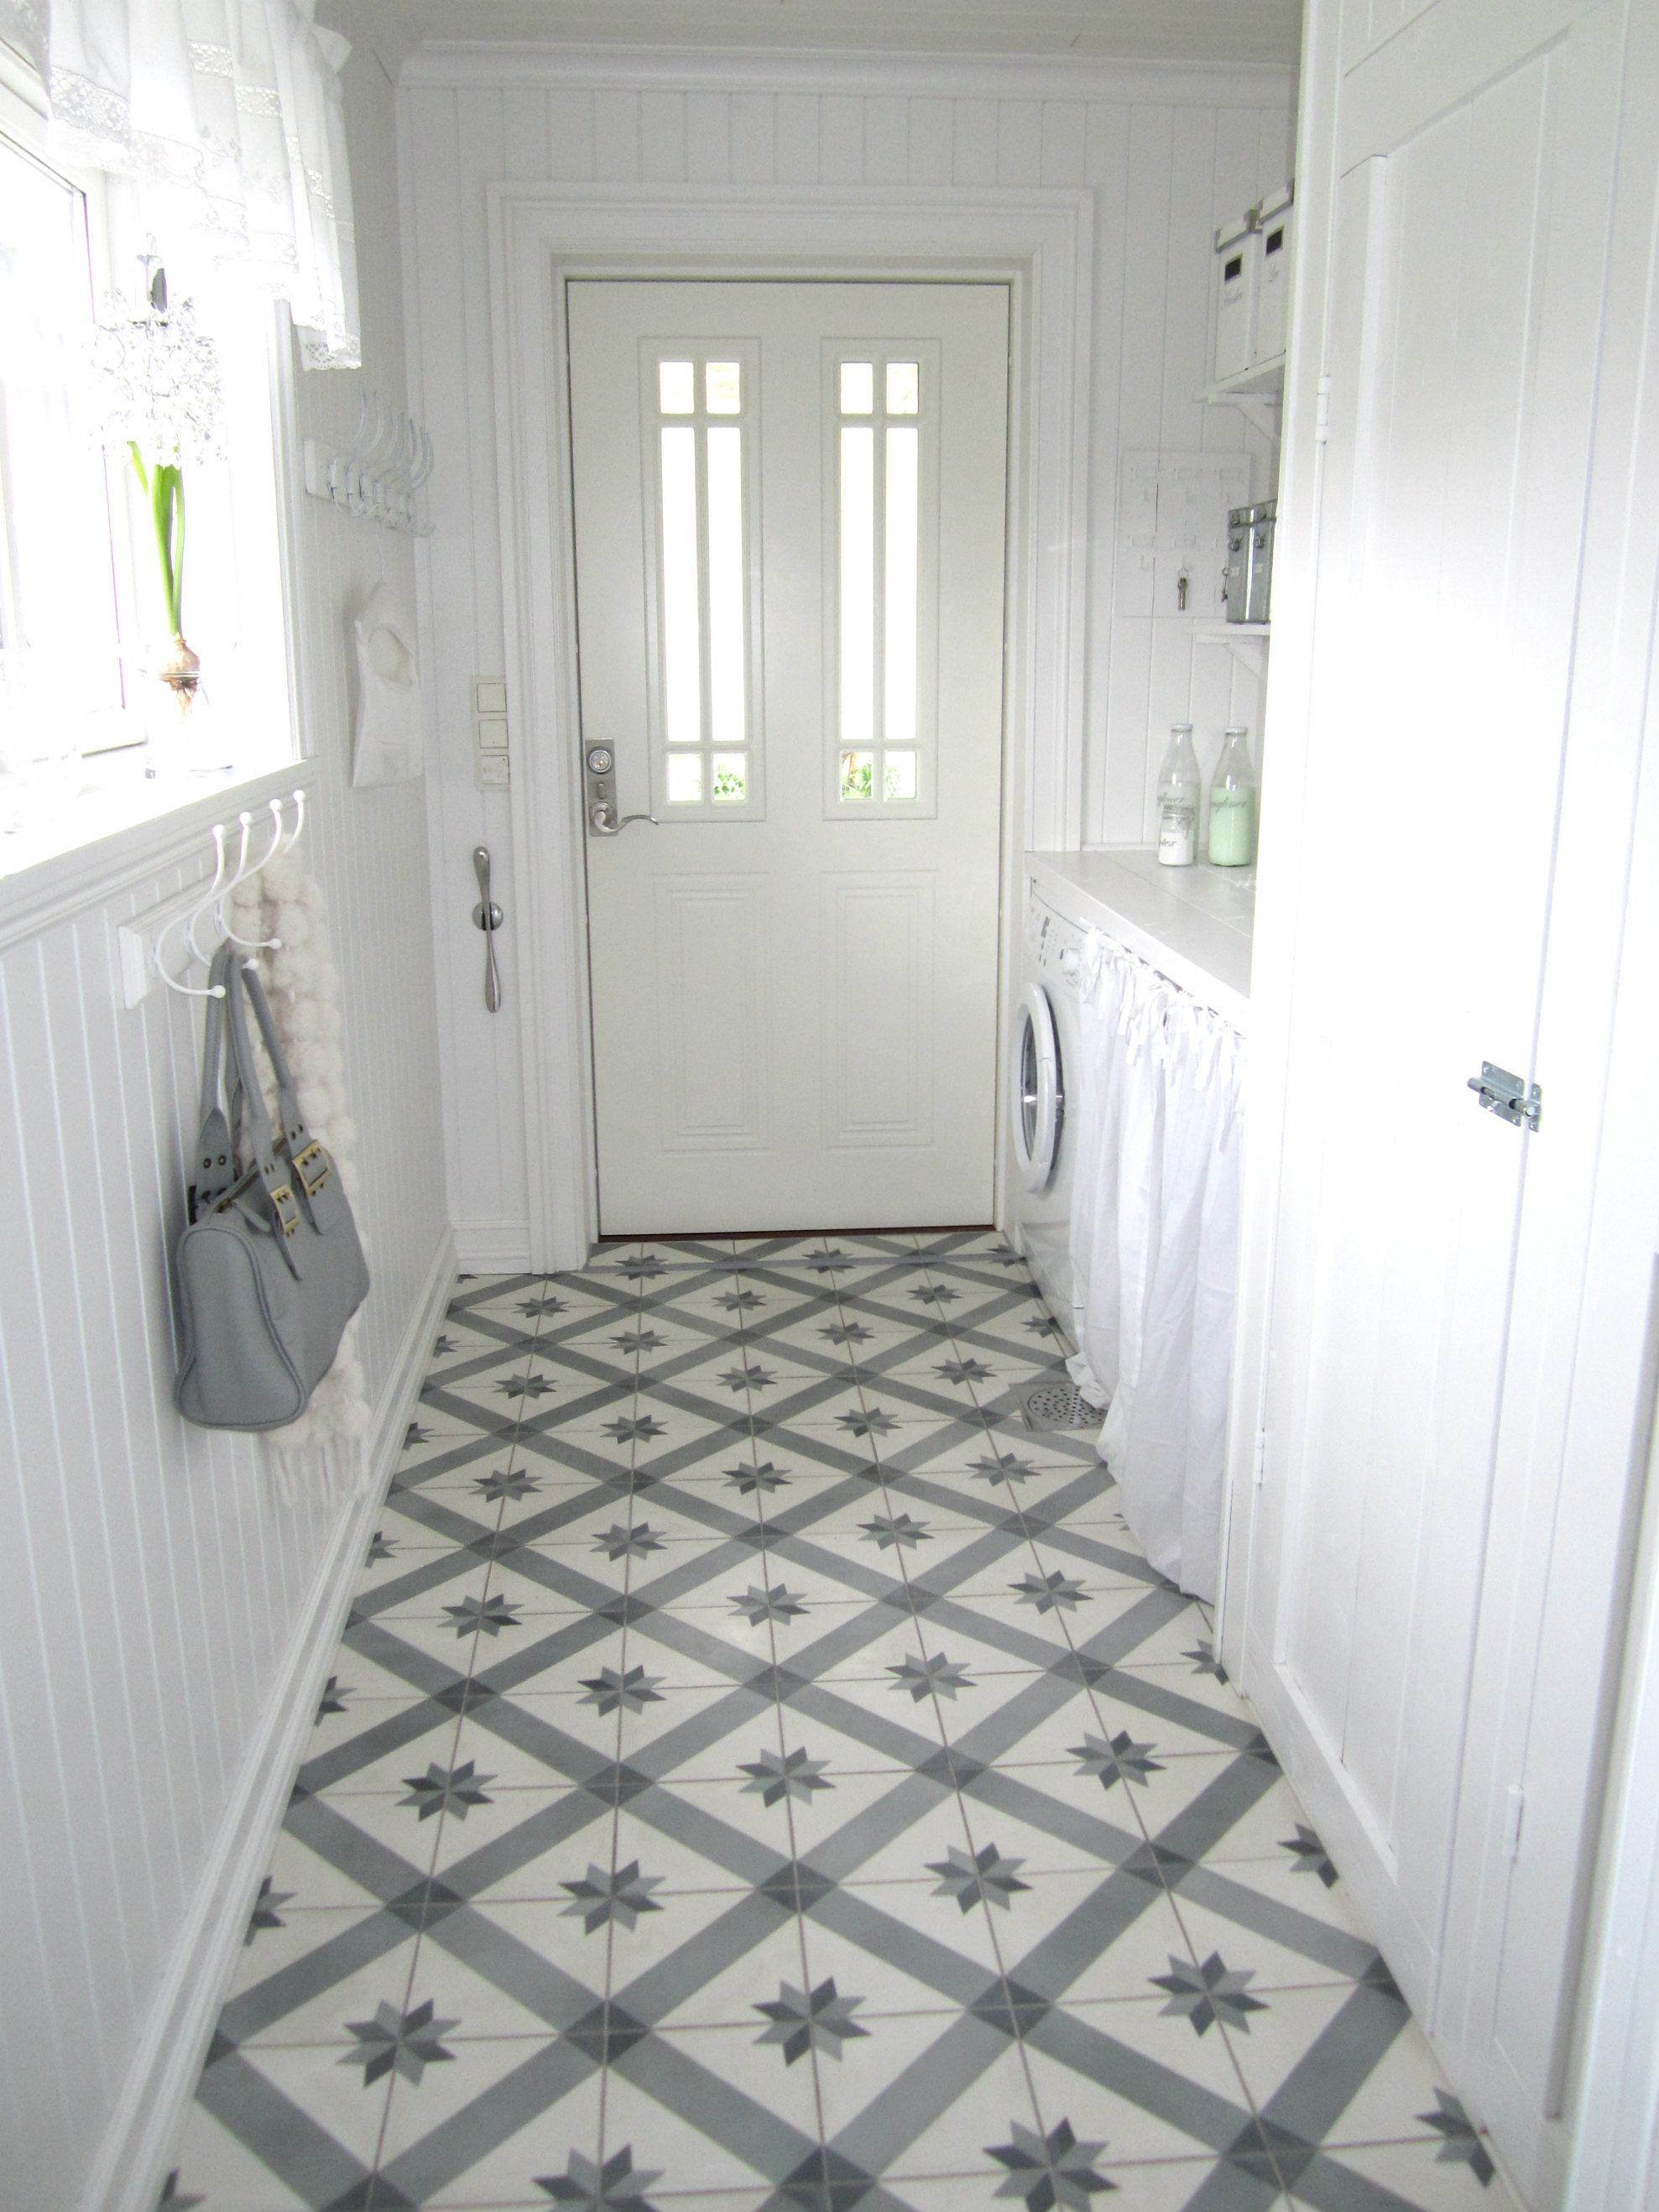 Tile decals quadrostyle vinyl floor tile sticker gustavian quadrostyle offers you a new way to renovate your floors without hiring a tradesman our vinyl floor tile stickers are designed to cover your old floor dailygadgetfo Choice Image